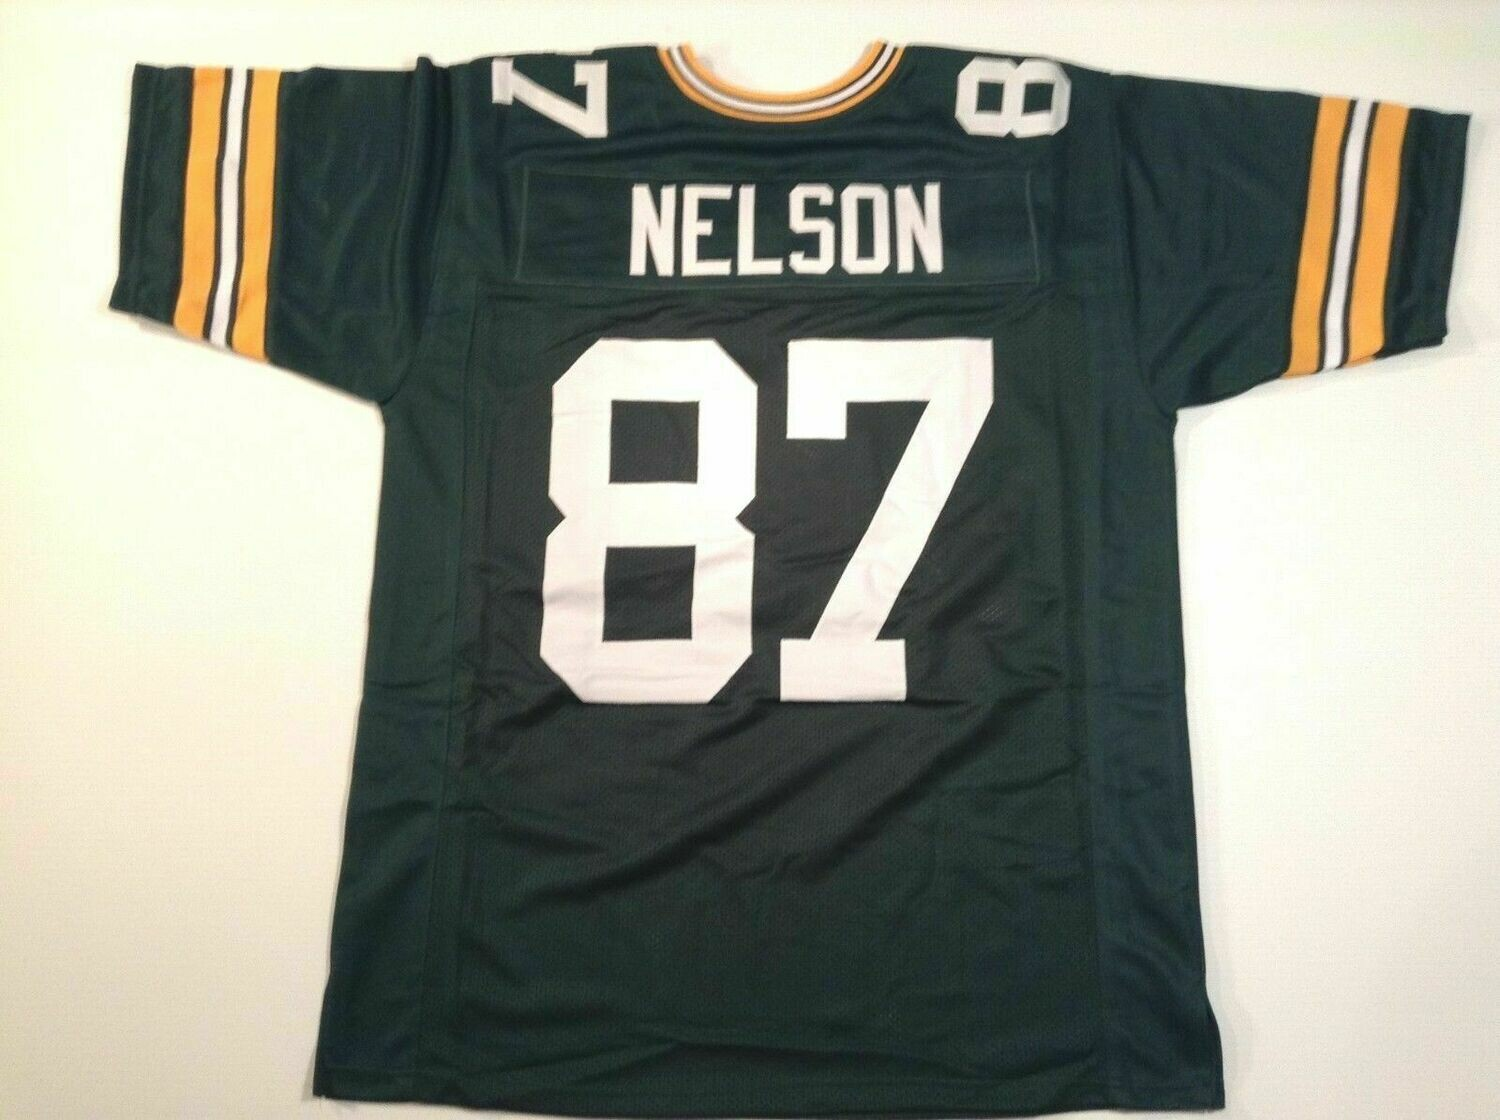 UNSIGNED CUSTOM Sewn Stitched Jordy Nelson Green Jersey